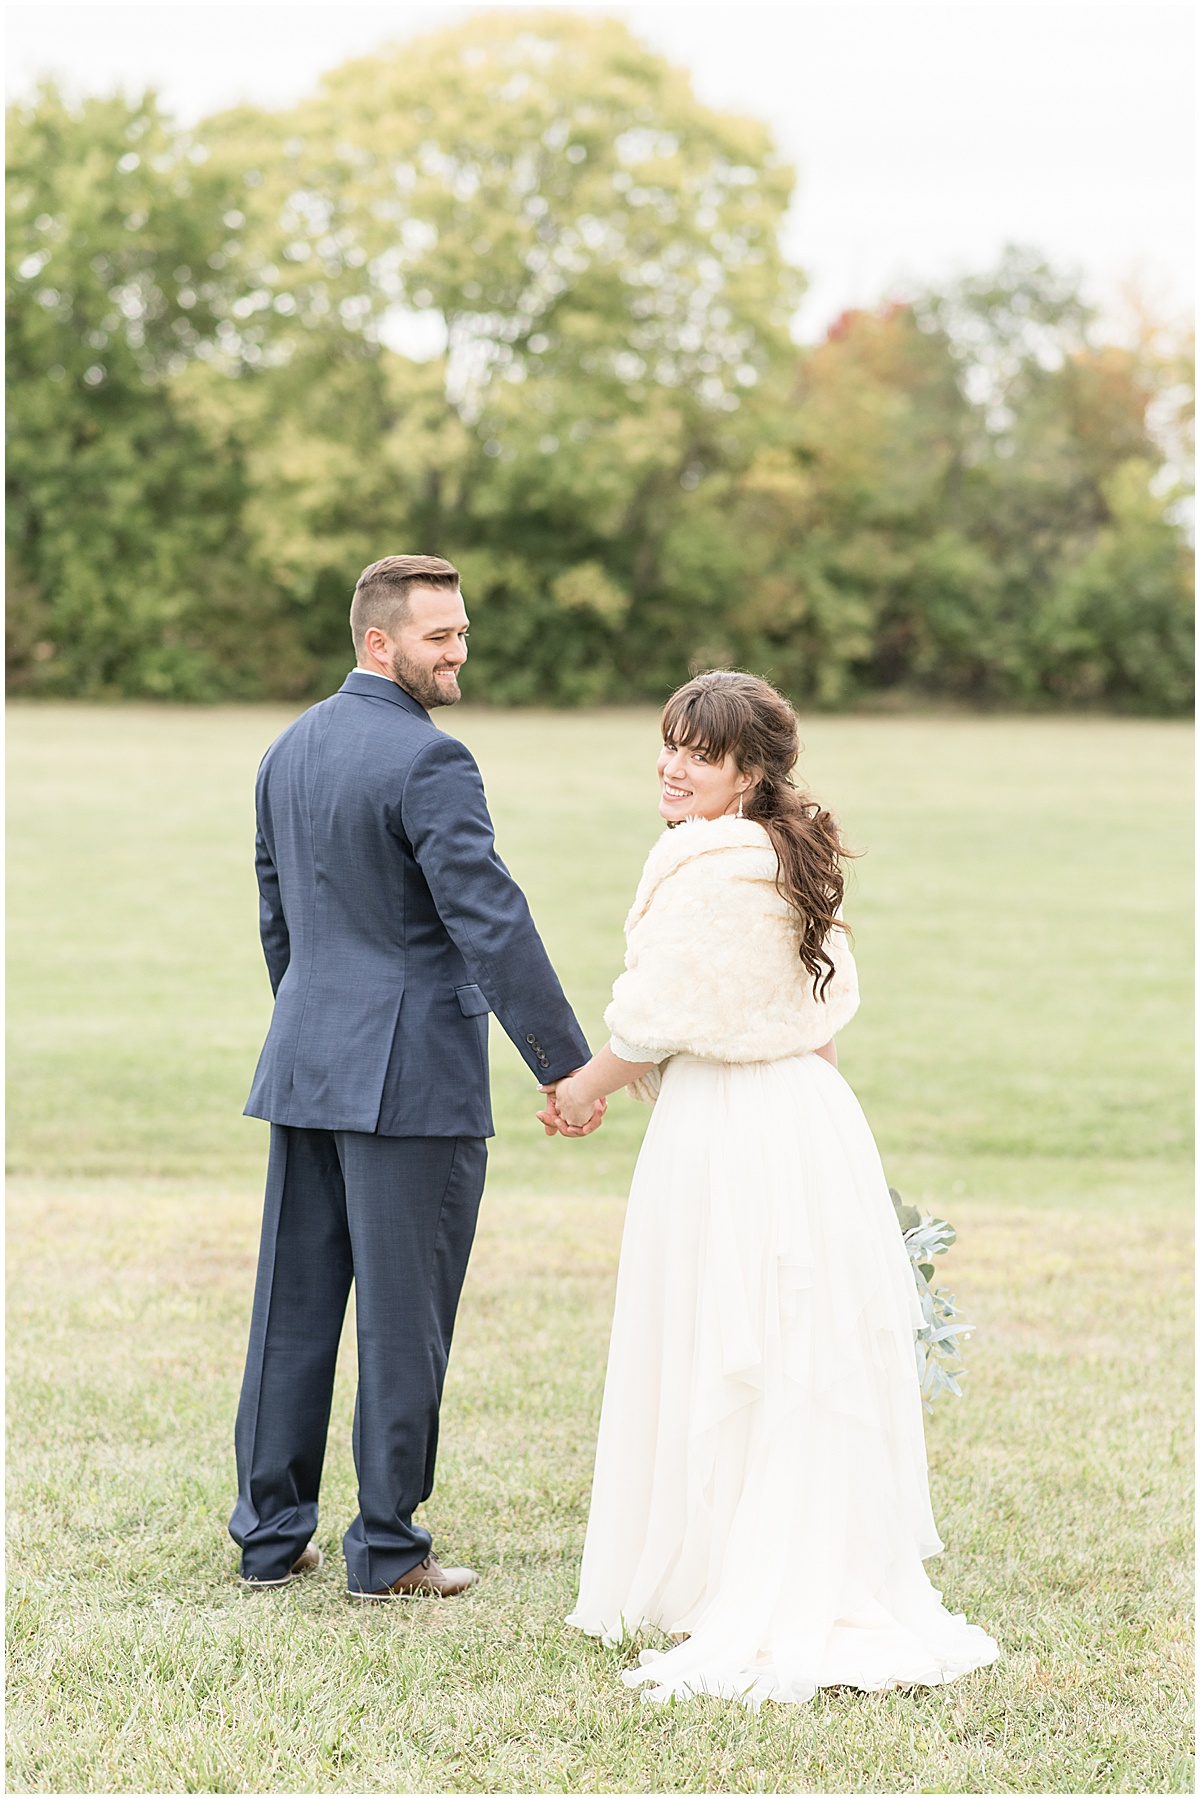 Bride and groom hold hands after fall wedding in Lafayette, Indiana